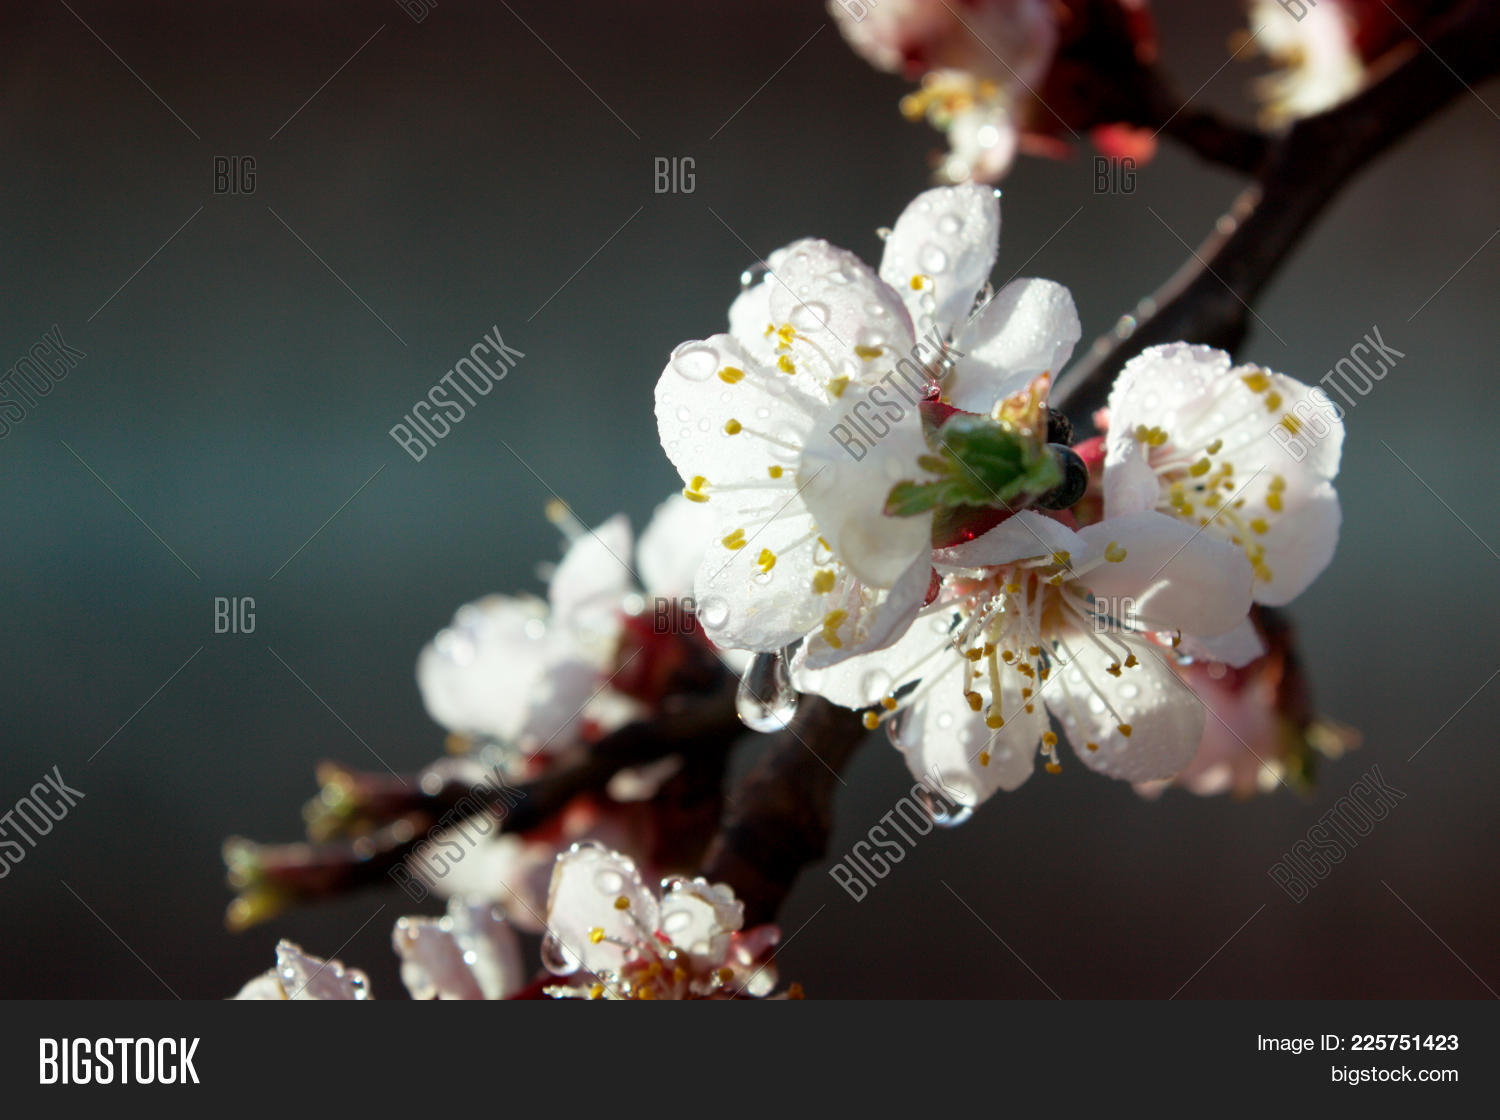 Apricot Tree Flowers Spring White Flowers On A Tree Branch